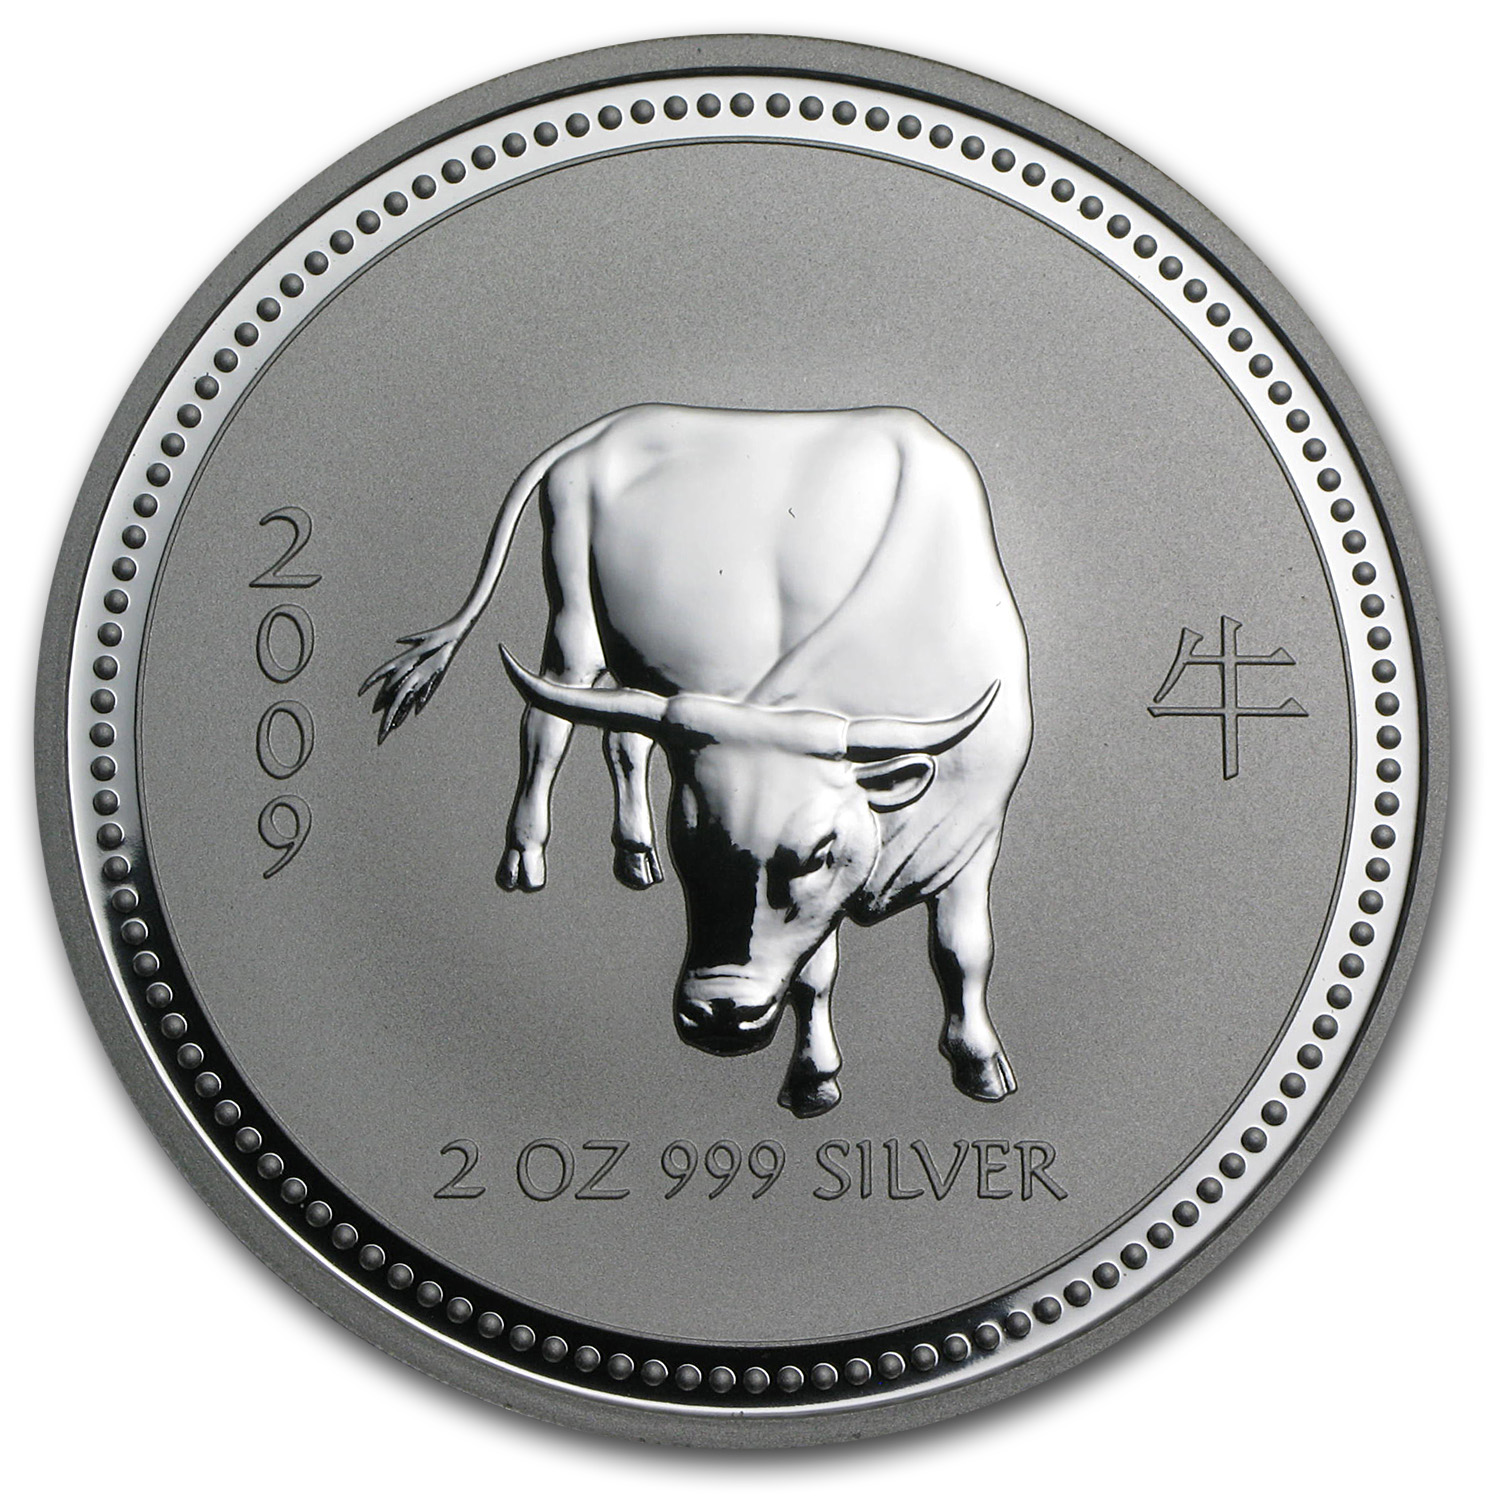 2009 2 oz Silver Lunar Year of the Ox (Series I) - Key Date!